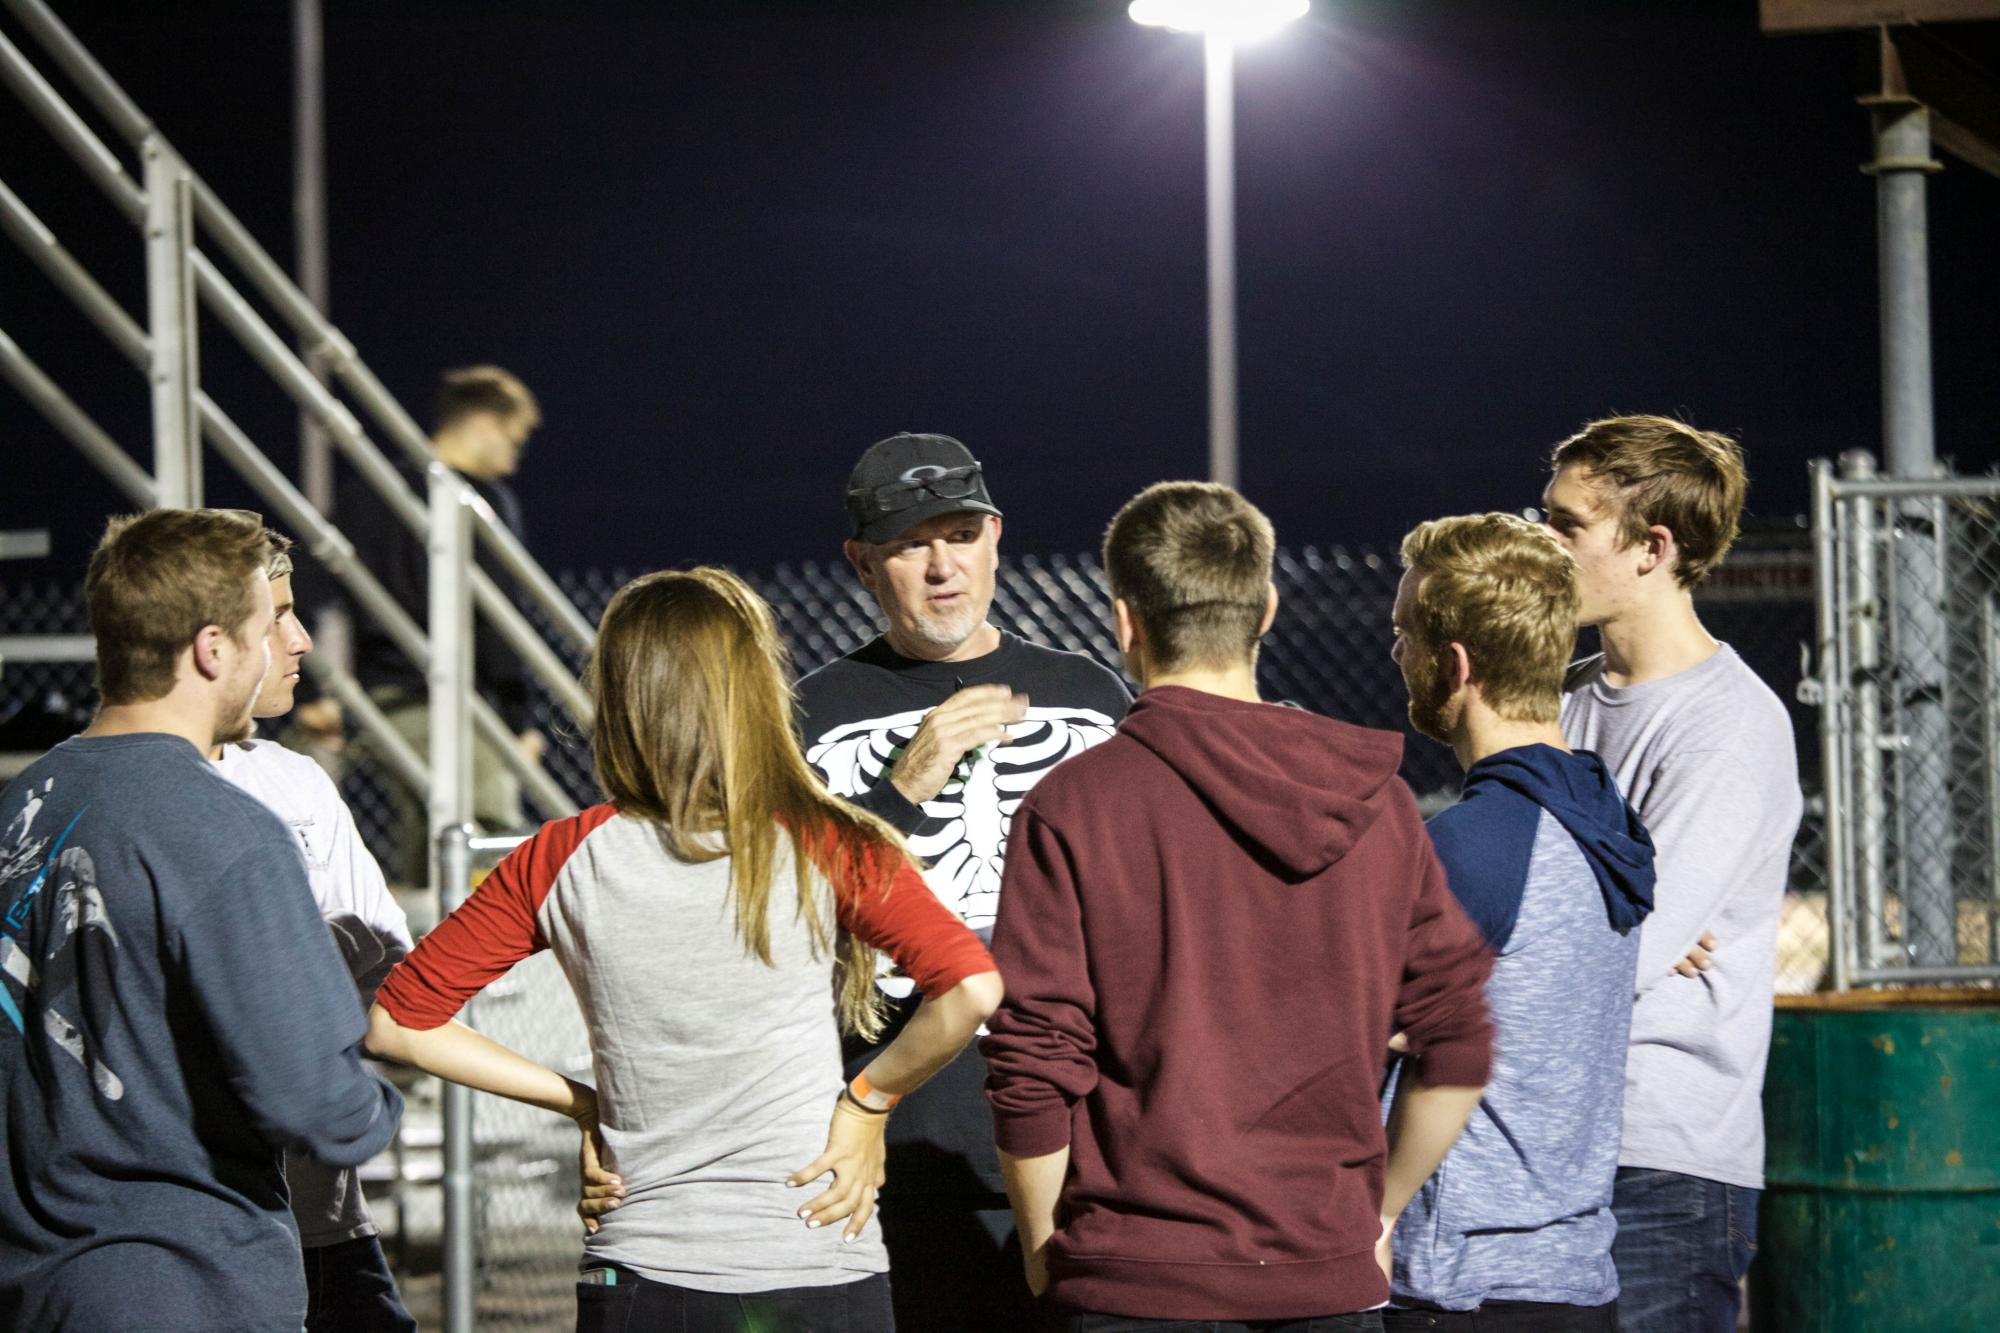 UA Engagement Faculty Fellow Ed Prather , who has an interest in car and motorcycle racing and is himself a racer, hosts a Kart Night with students.